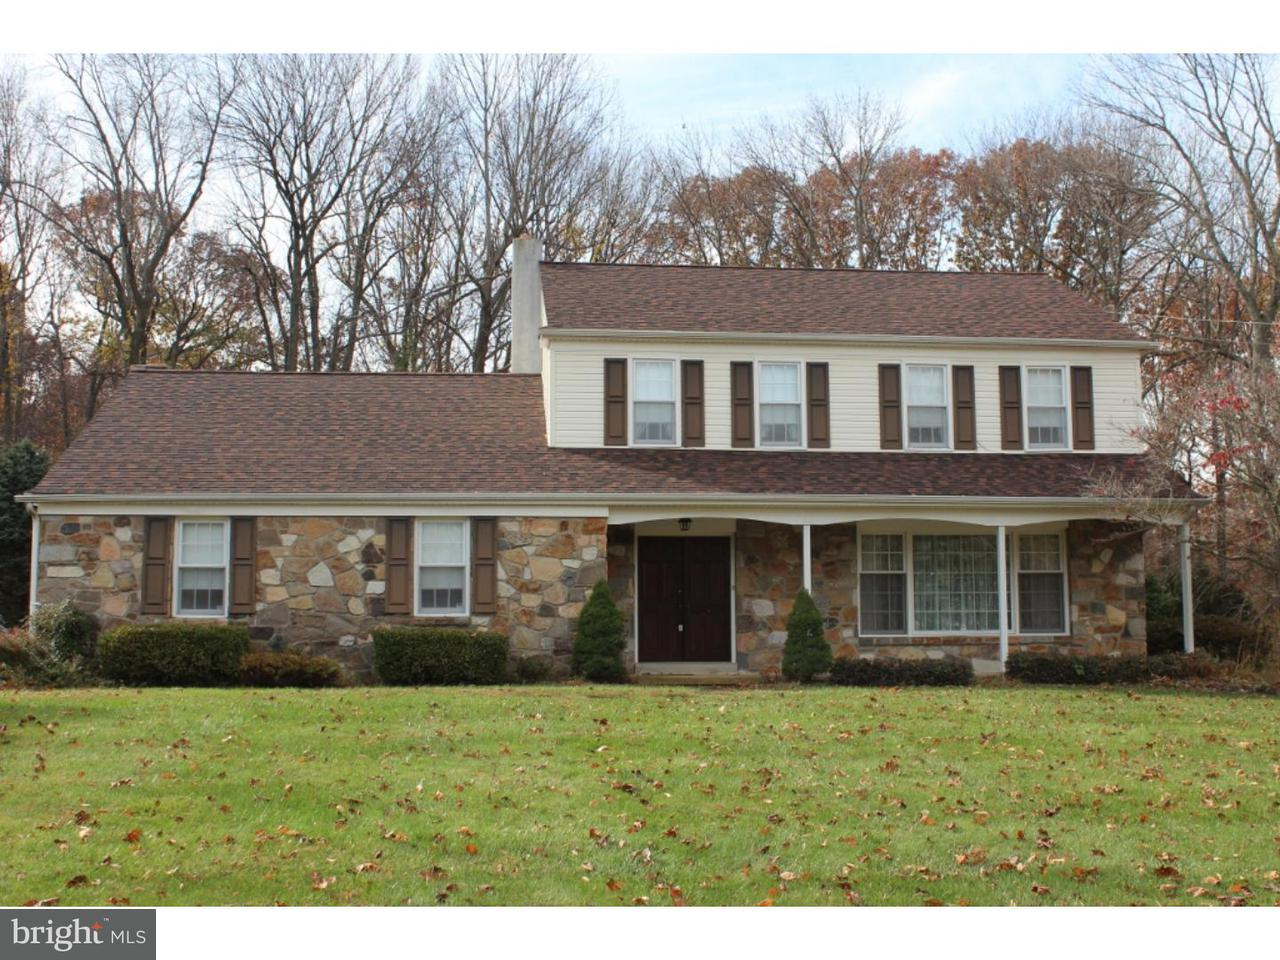 Single Family Home for Sale at 8 ISABELLA Lane Cheyney, Pennsylvania 19342 United States